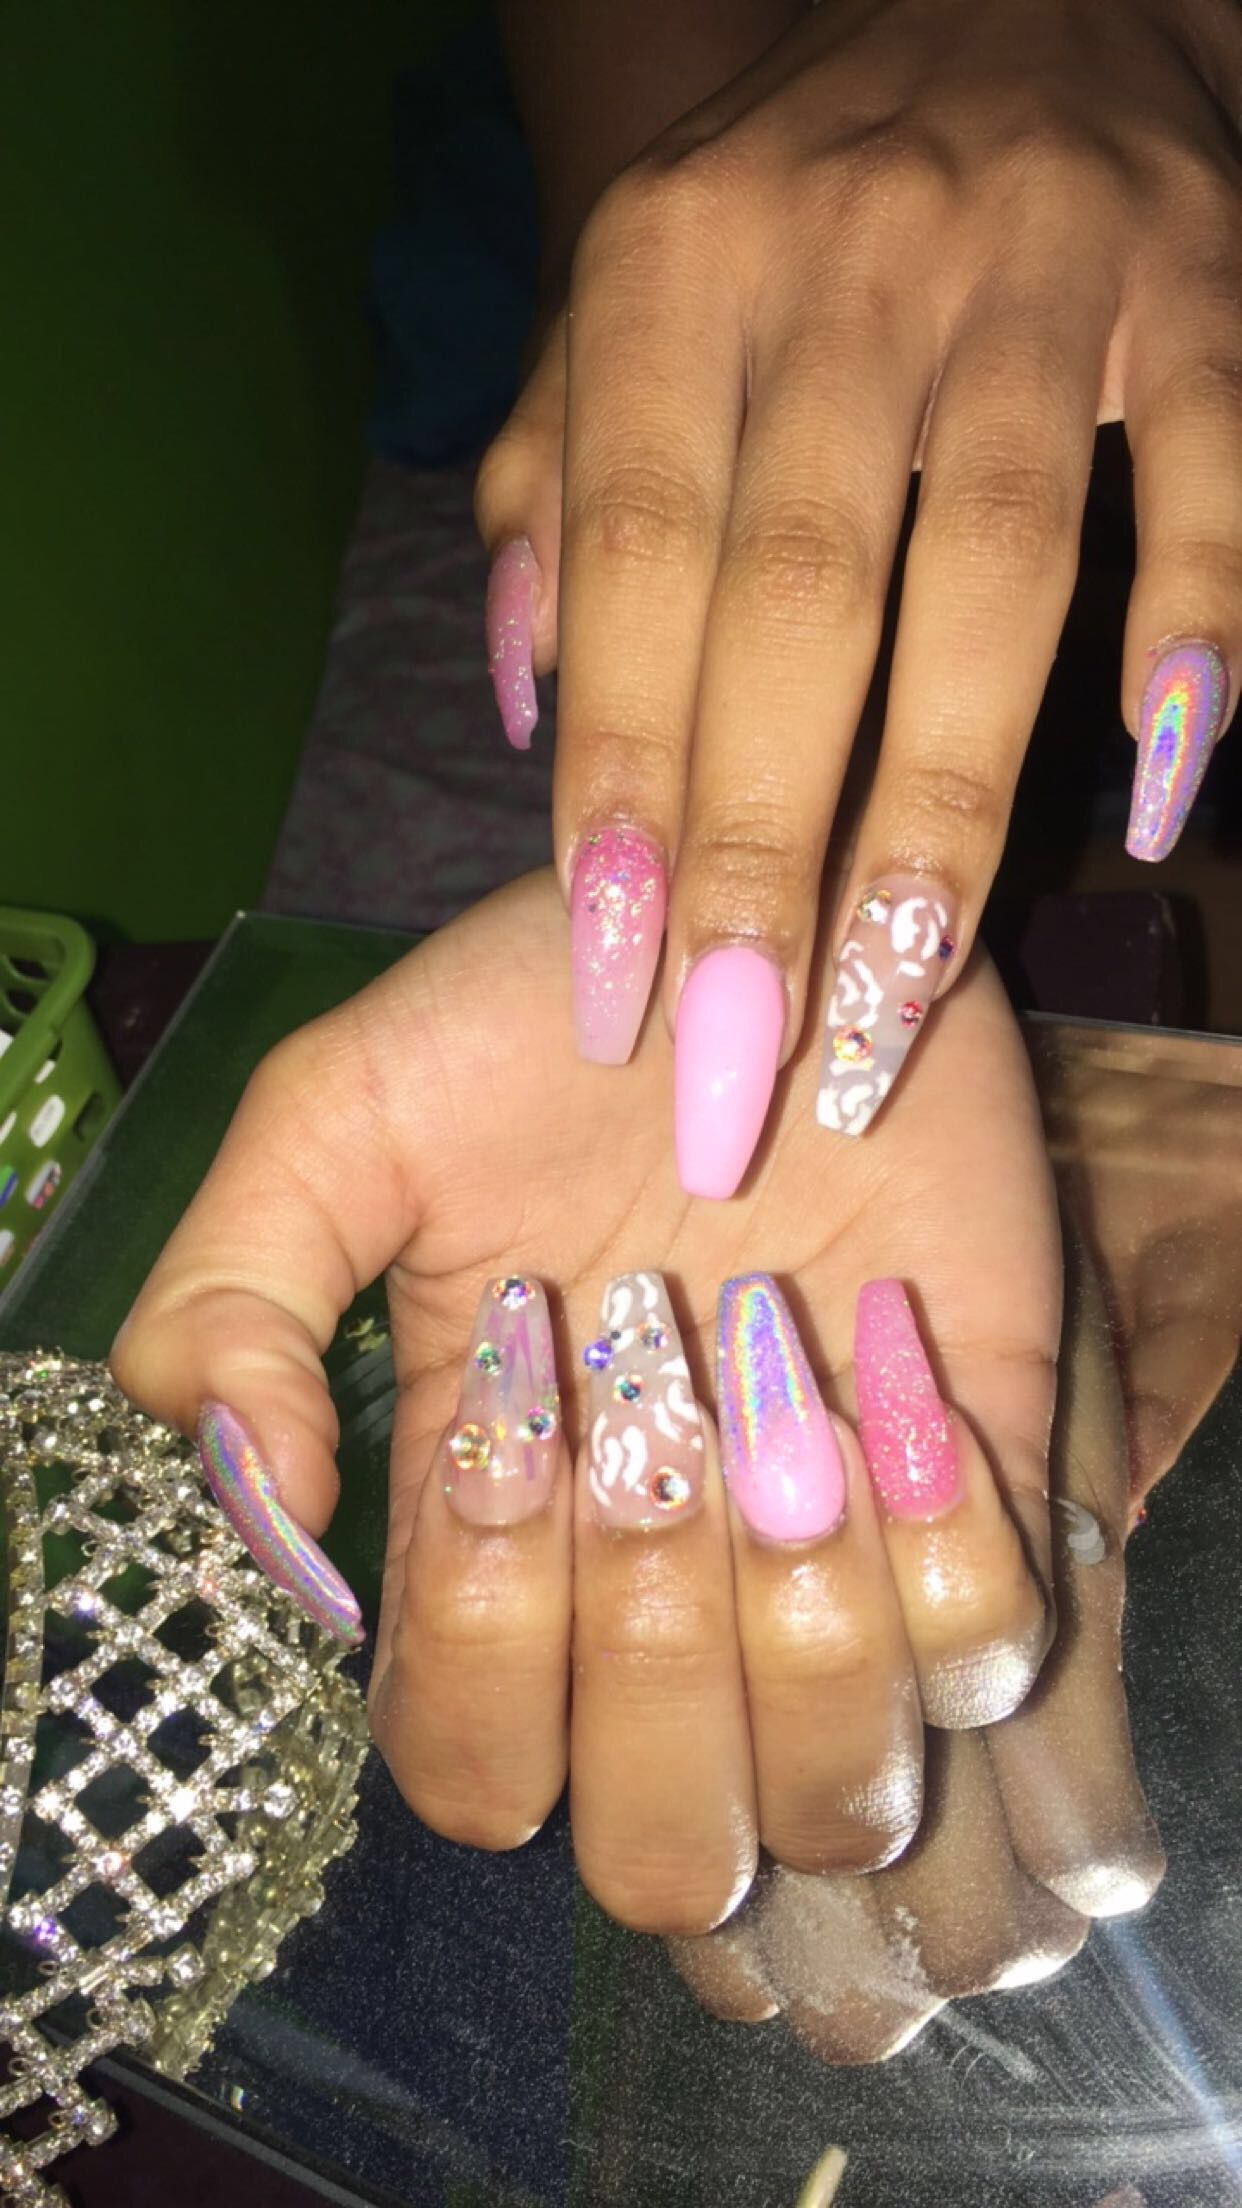 Instagram sophiee_nailz new nail tech looking for views